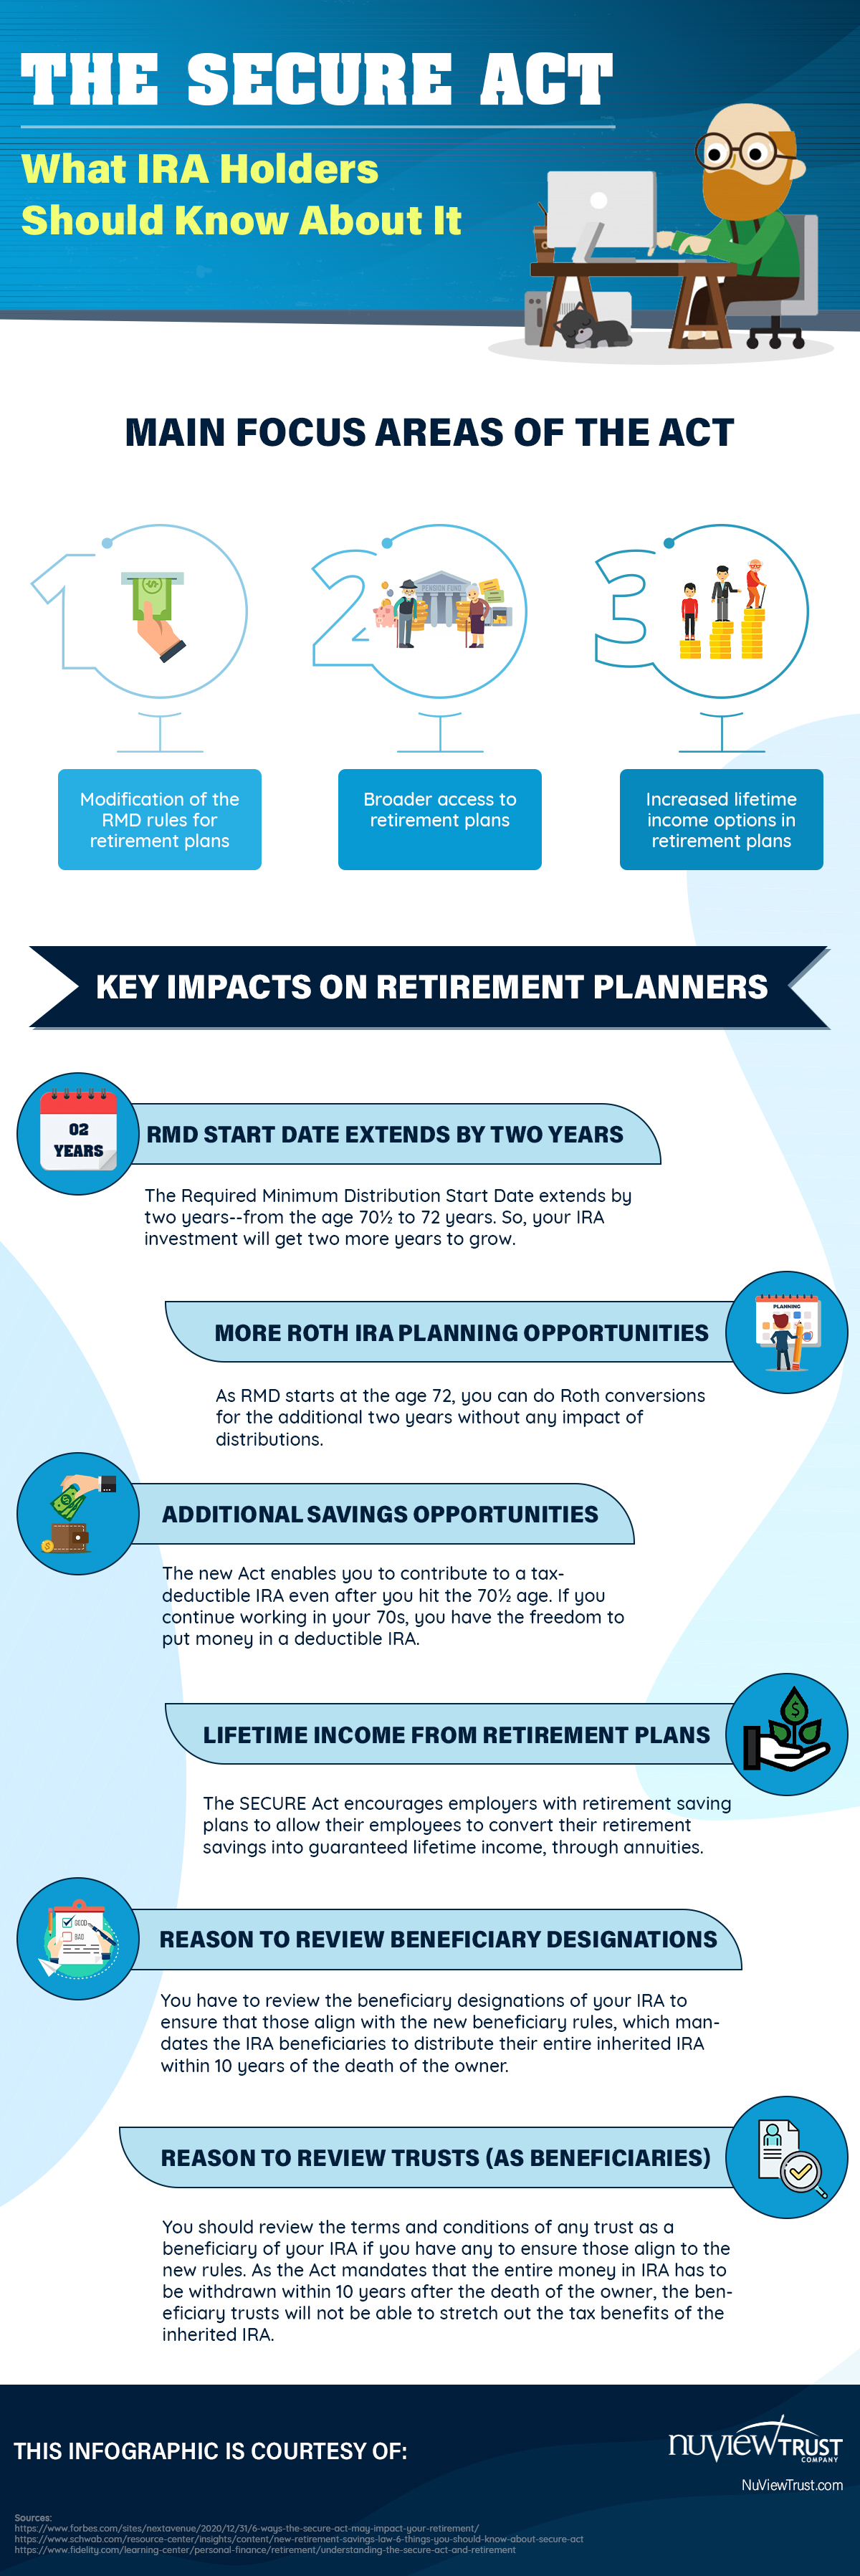 How The SECURE Act Benefits Retirement Savers